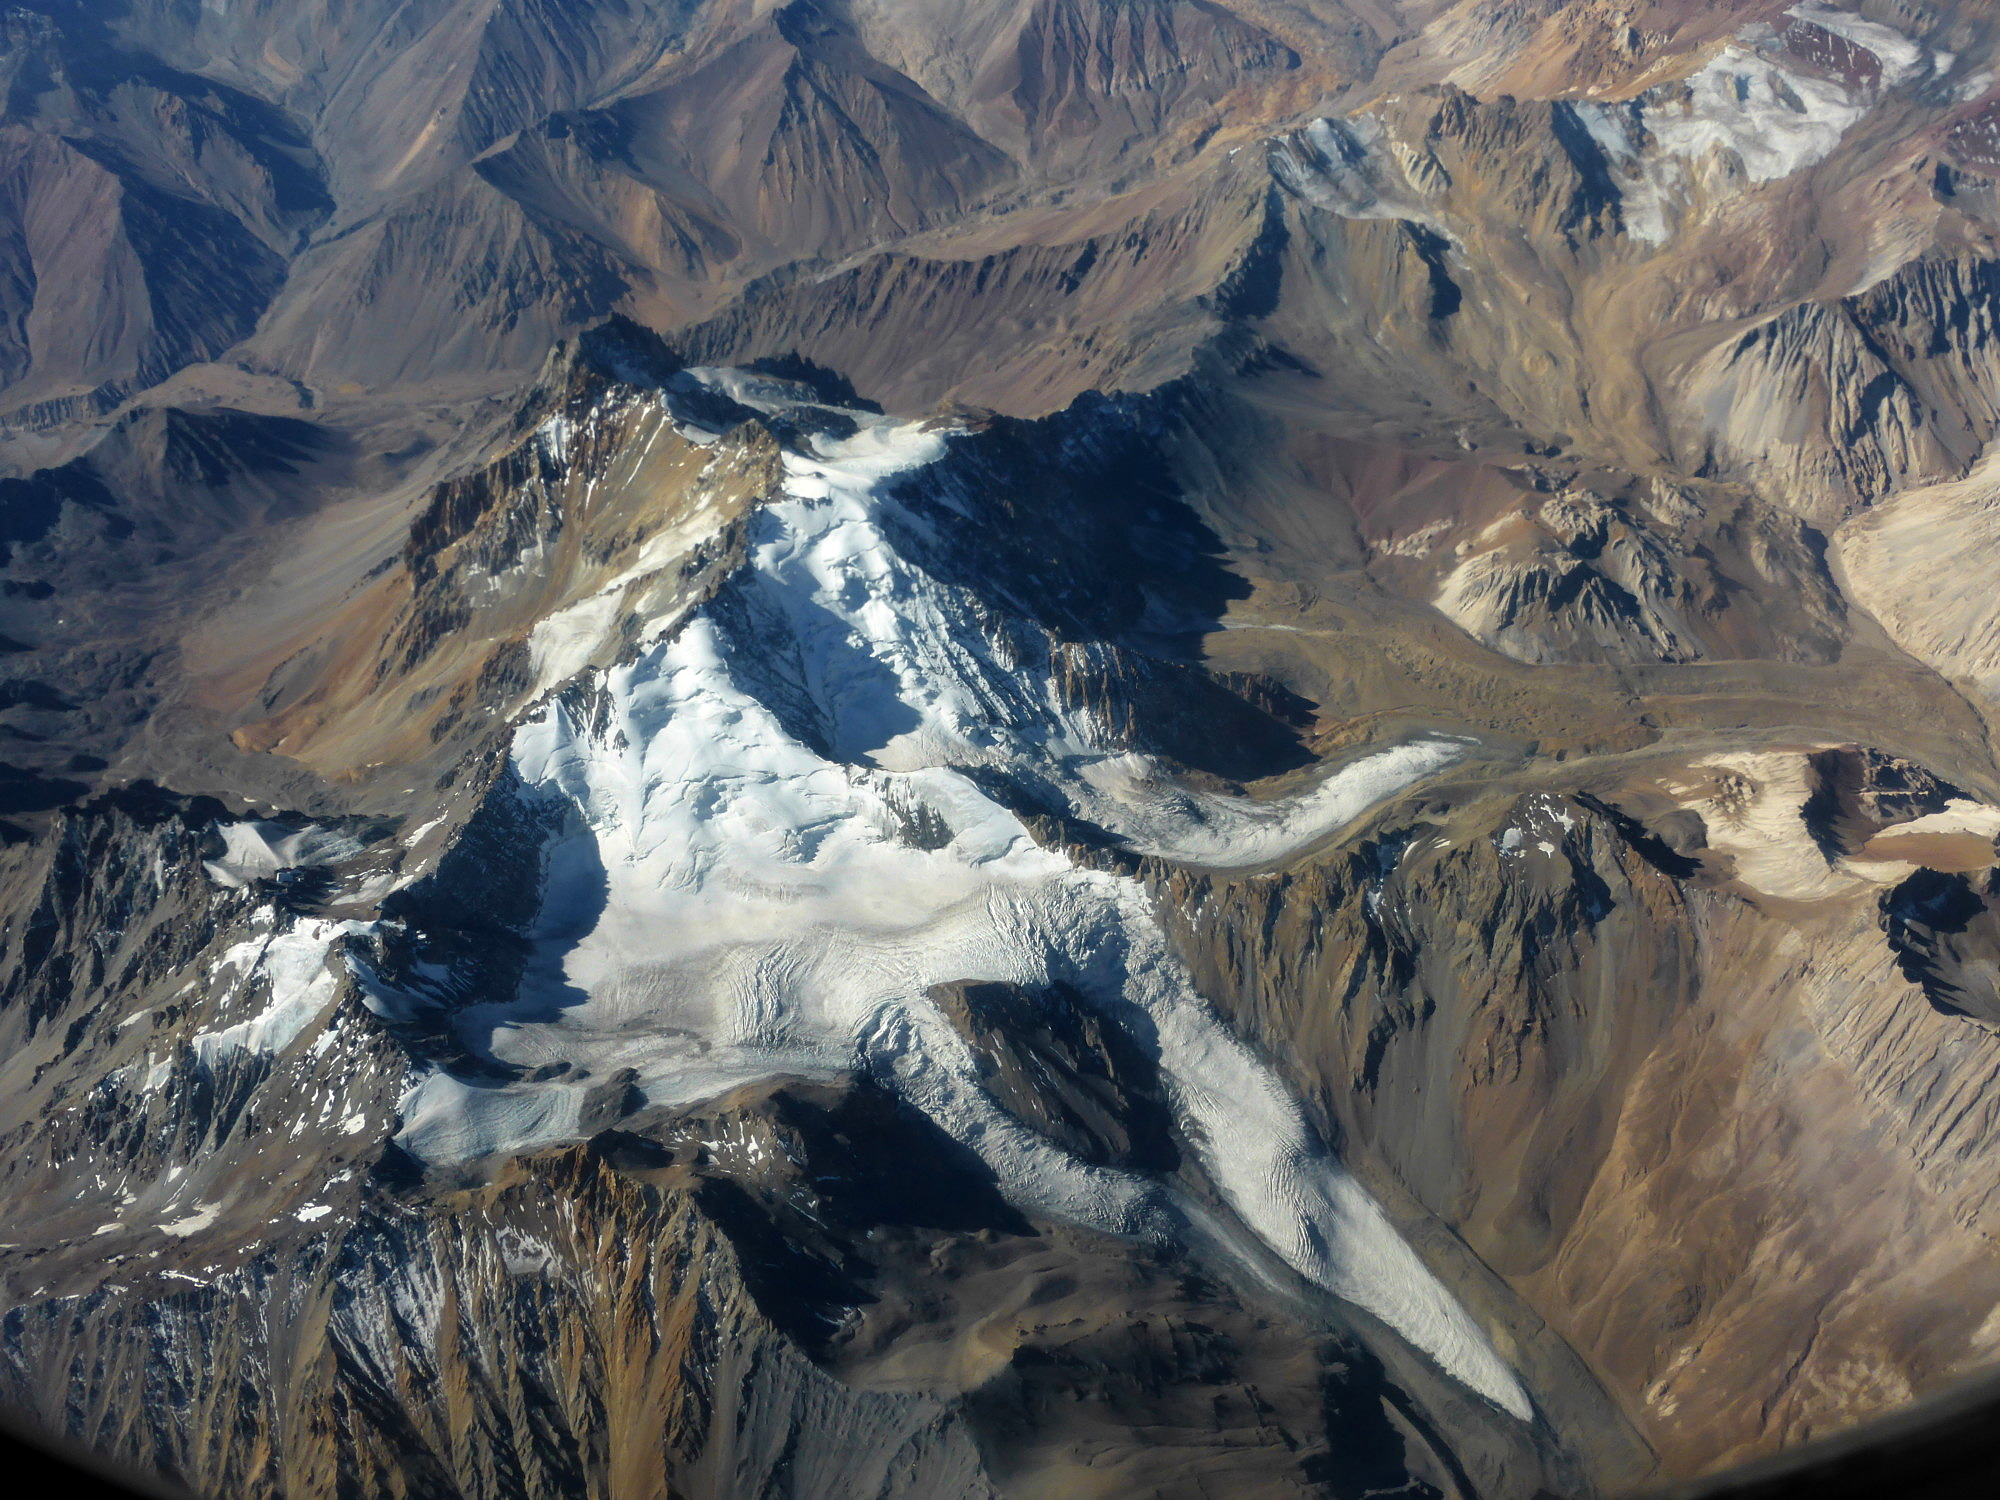 Whilst glaciers in the Central Andes south of Santiago de Chile have lost considerably less mass than previously presumed, the glaciers may still disappear entirely from this region in the foreseeable future. This would have serious consequences for the people there, who rely on the glacier melt water. (Image: FAU/Matthias Braun)